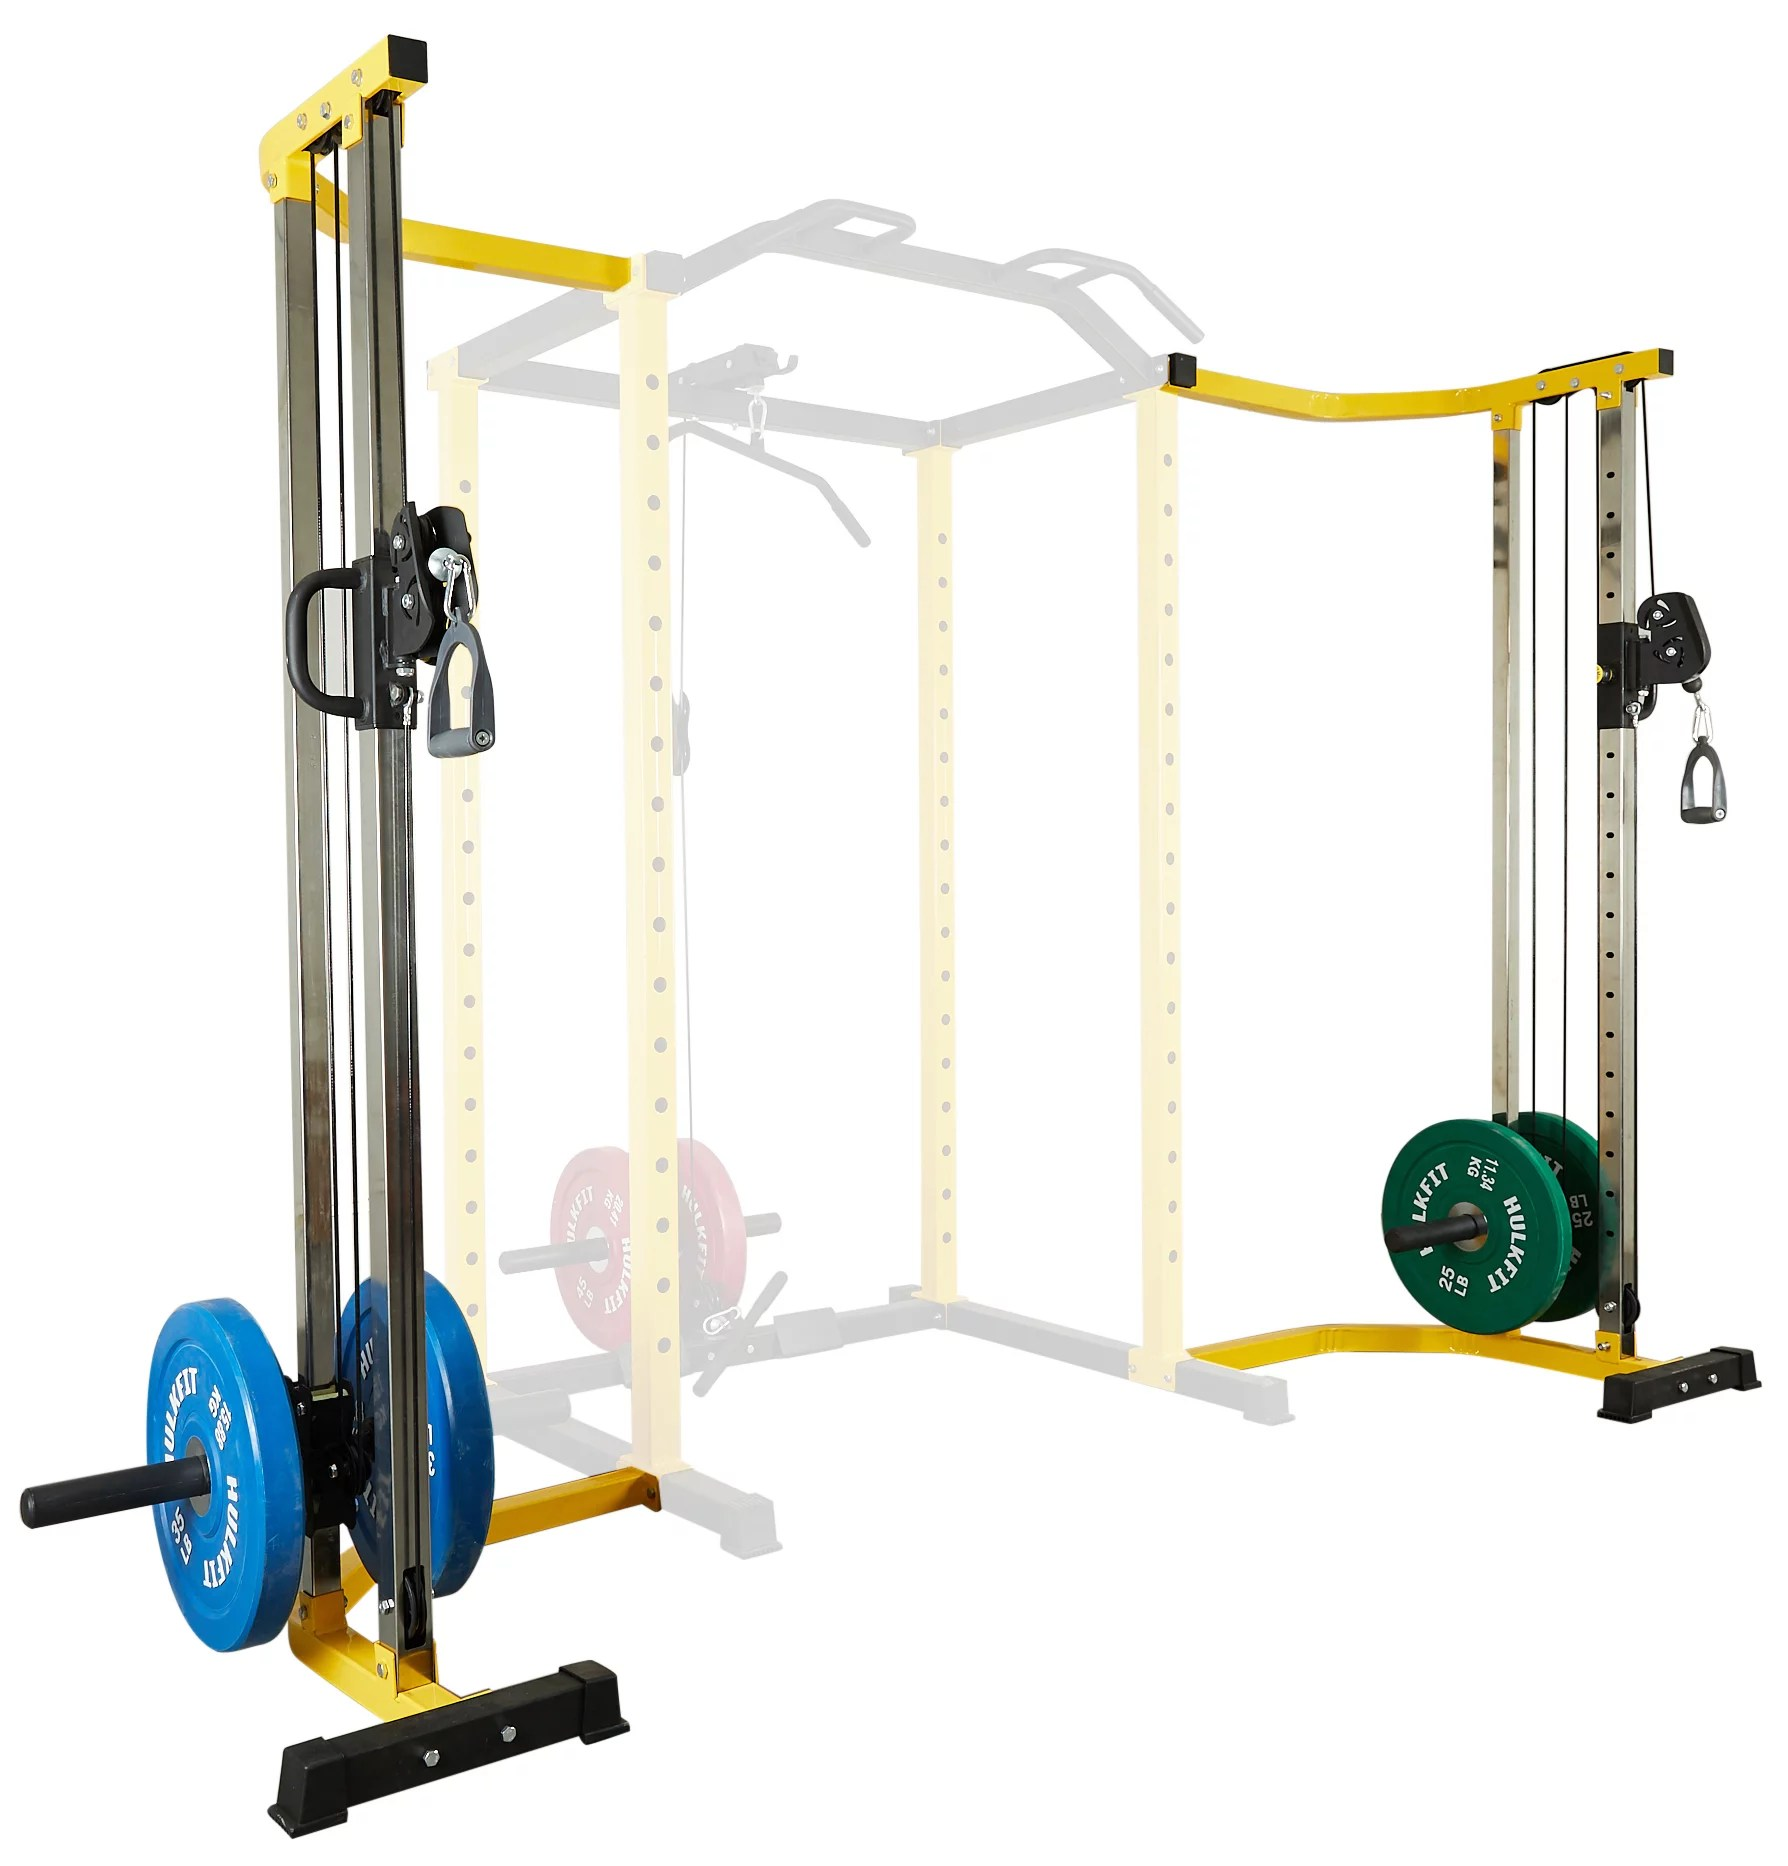 everyday essentials 1000 pound capacity multi function adjustable power cage with j hooks dip bars and other optional attachments